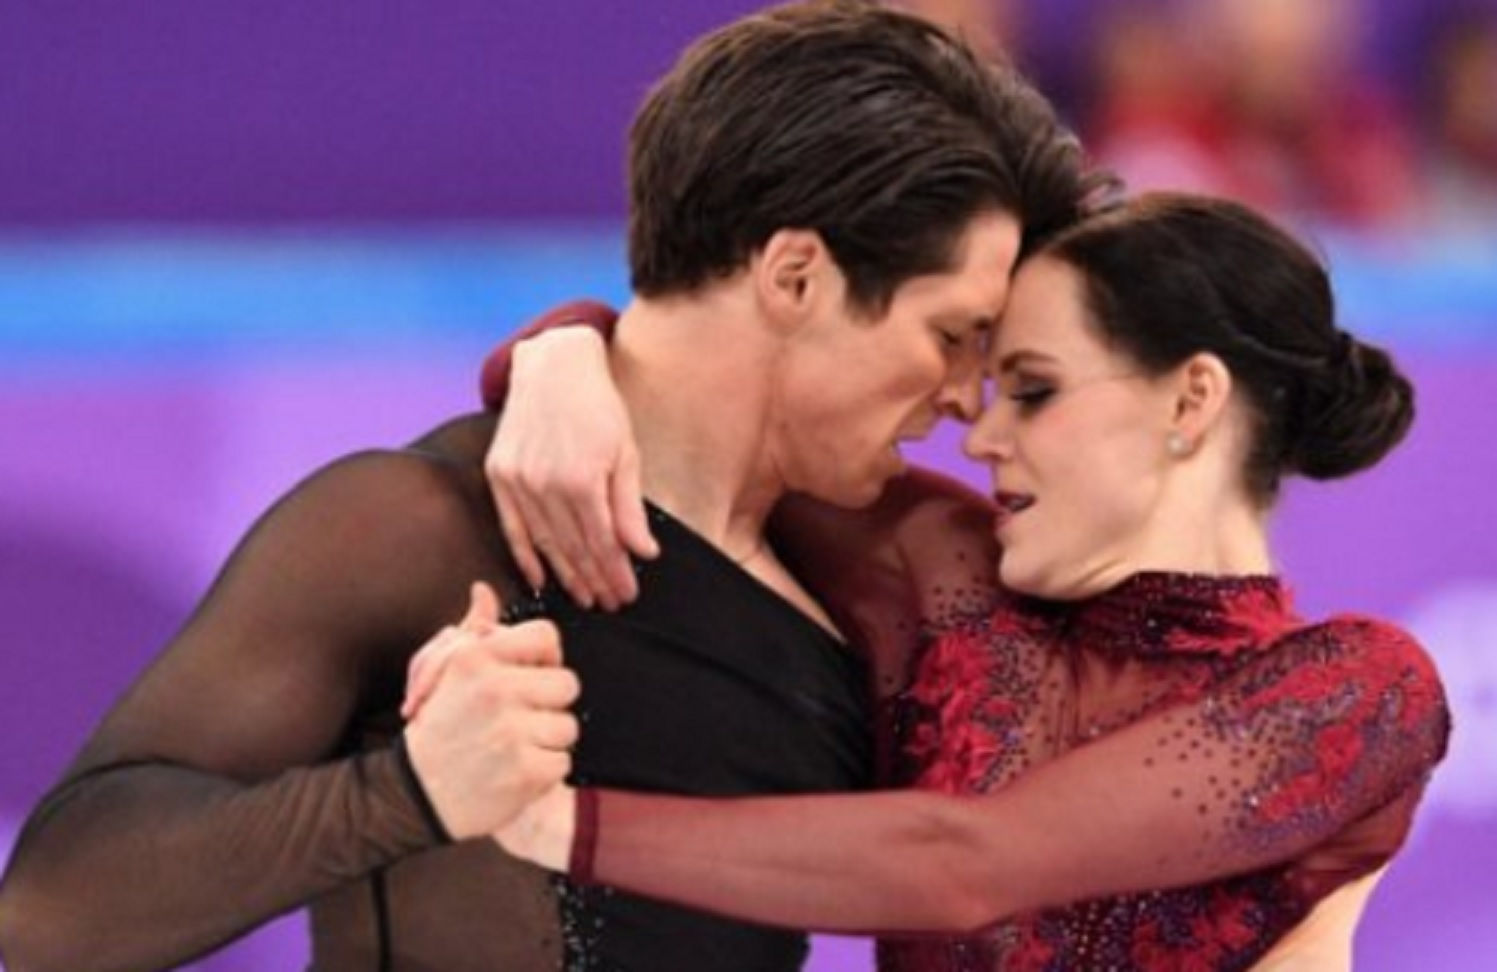 TESSA VIRTUE, SCOTT MOIR 5